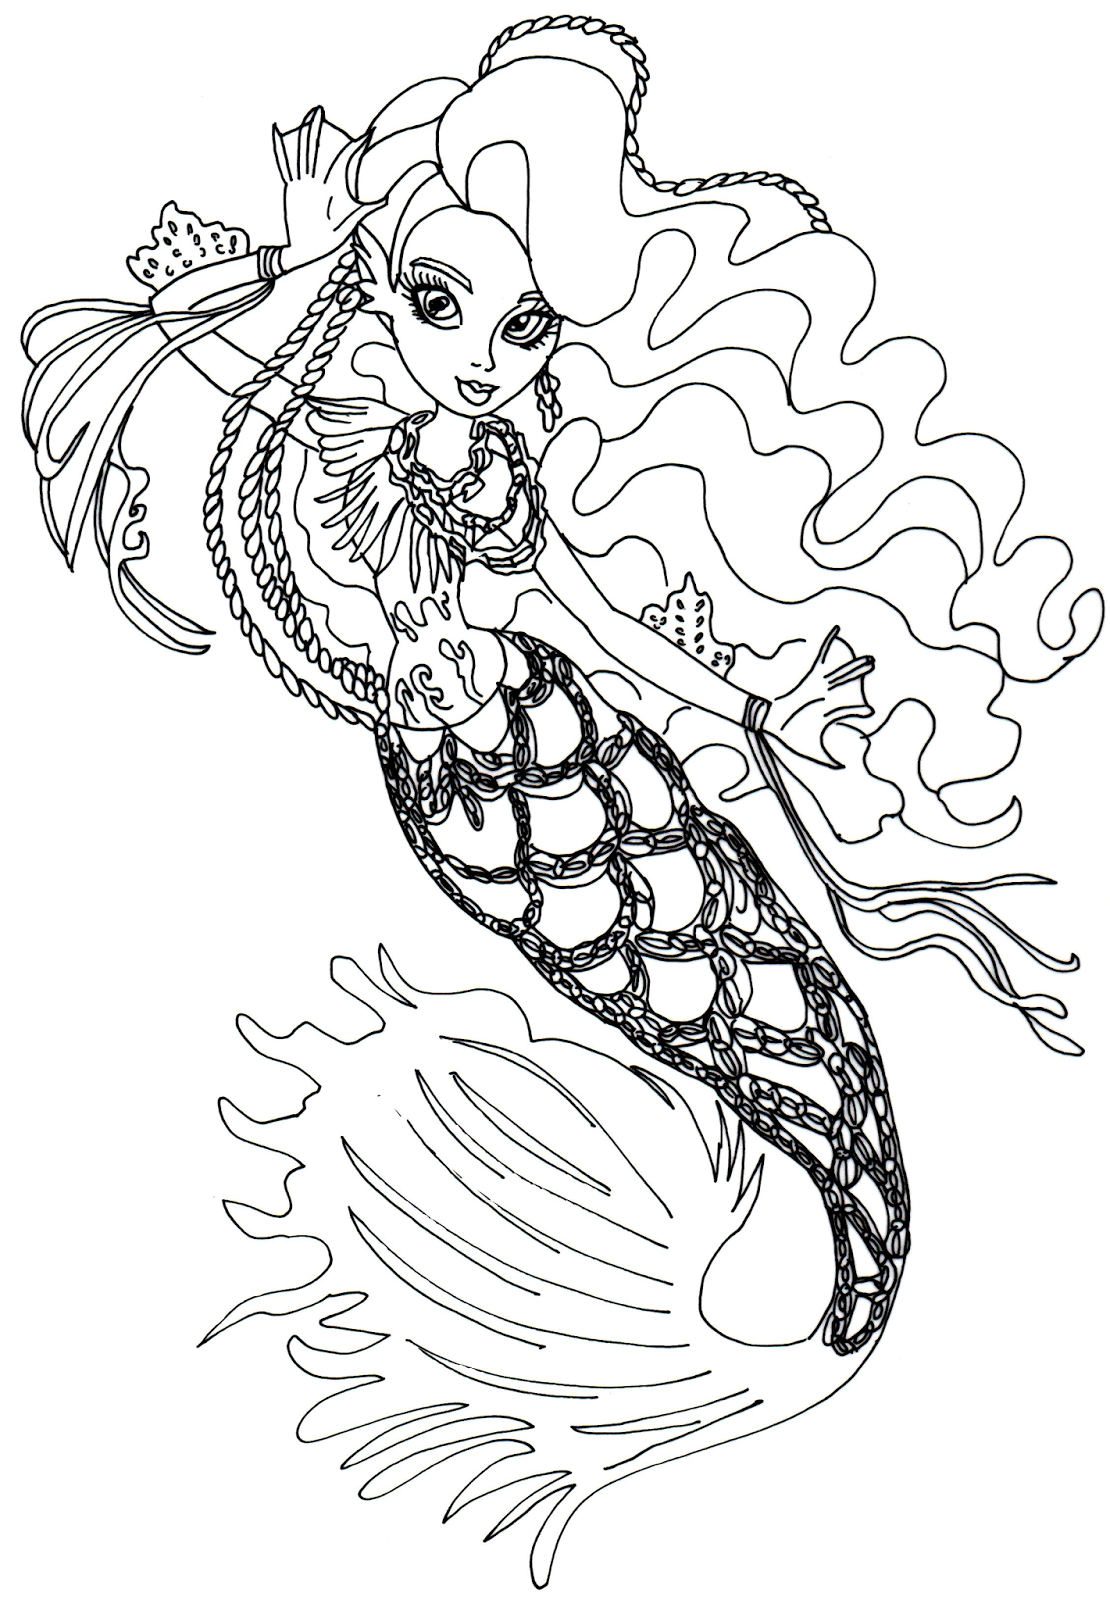 It's just an image of Sweet Free Printable Monster High Coloring Pages